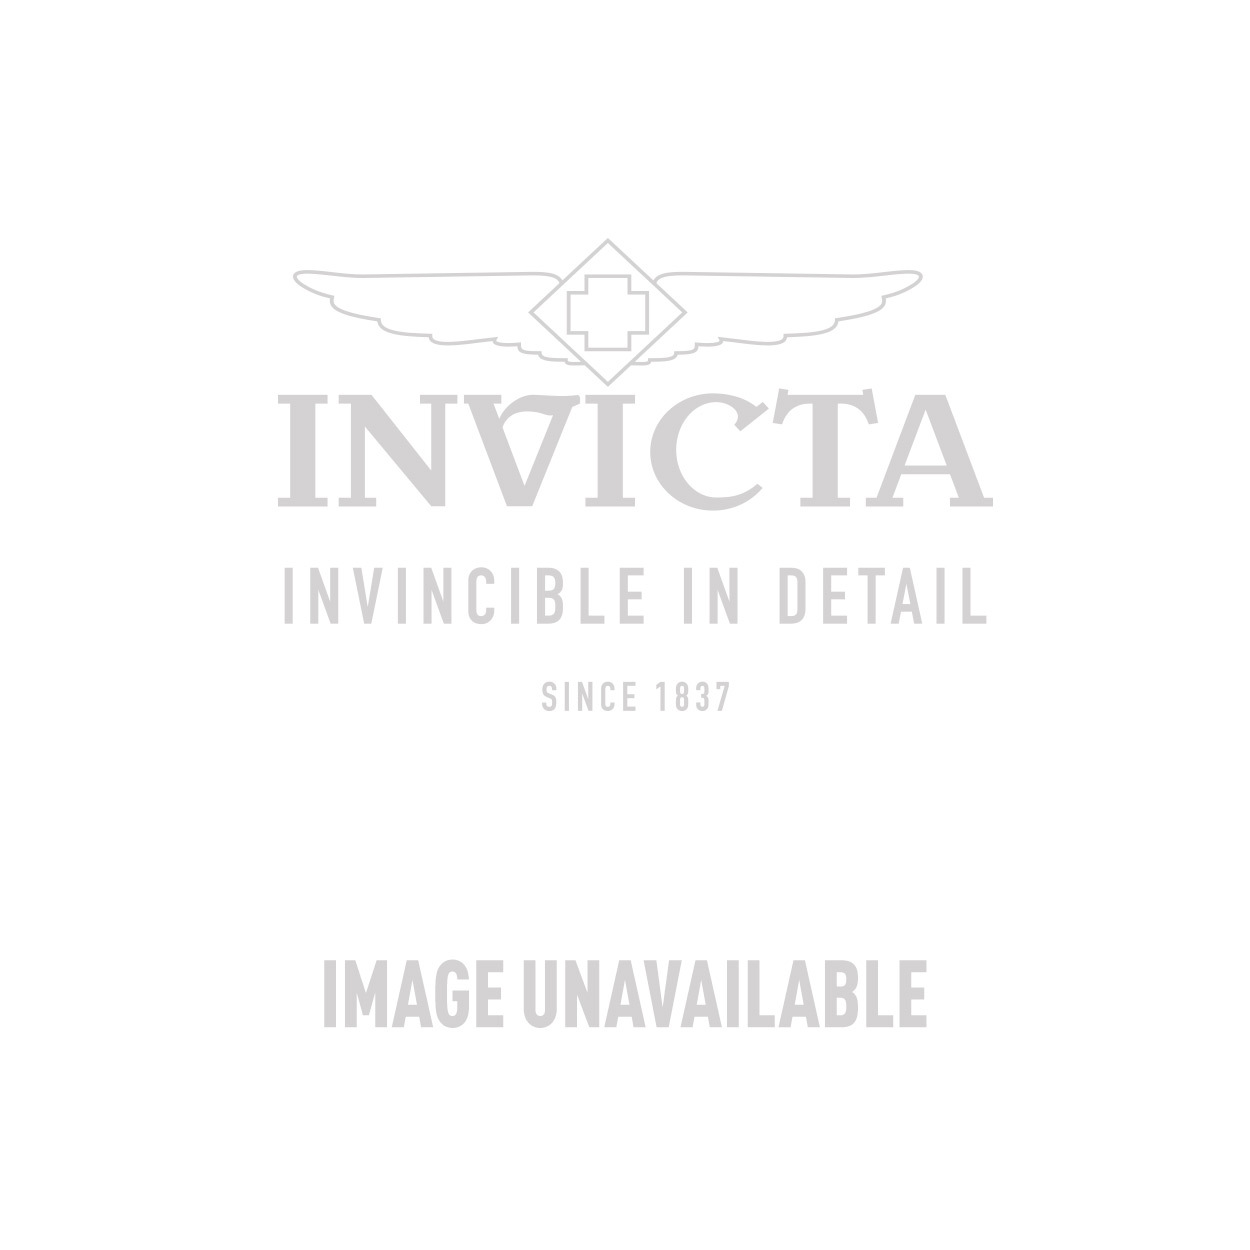 Invicta Specialty Quartz Watch - Stainless Steel case Stainless Steel band - Model 13961